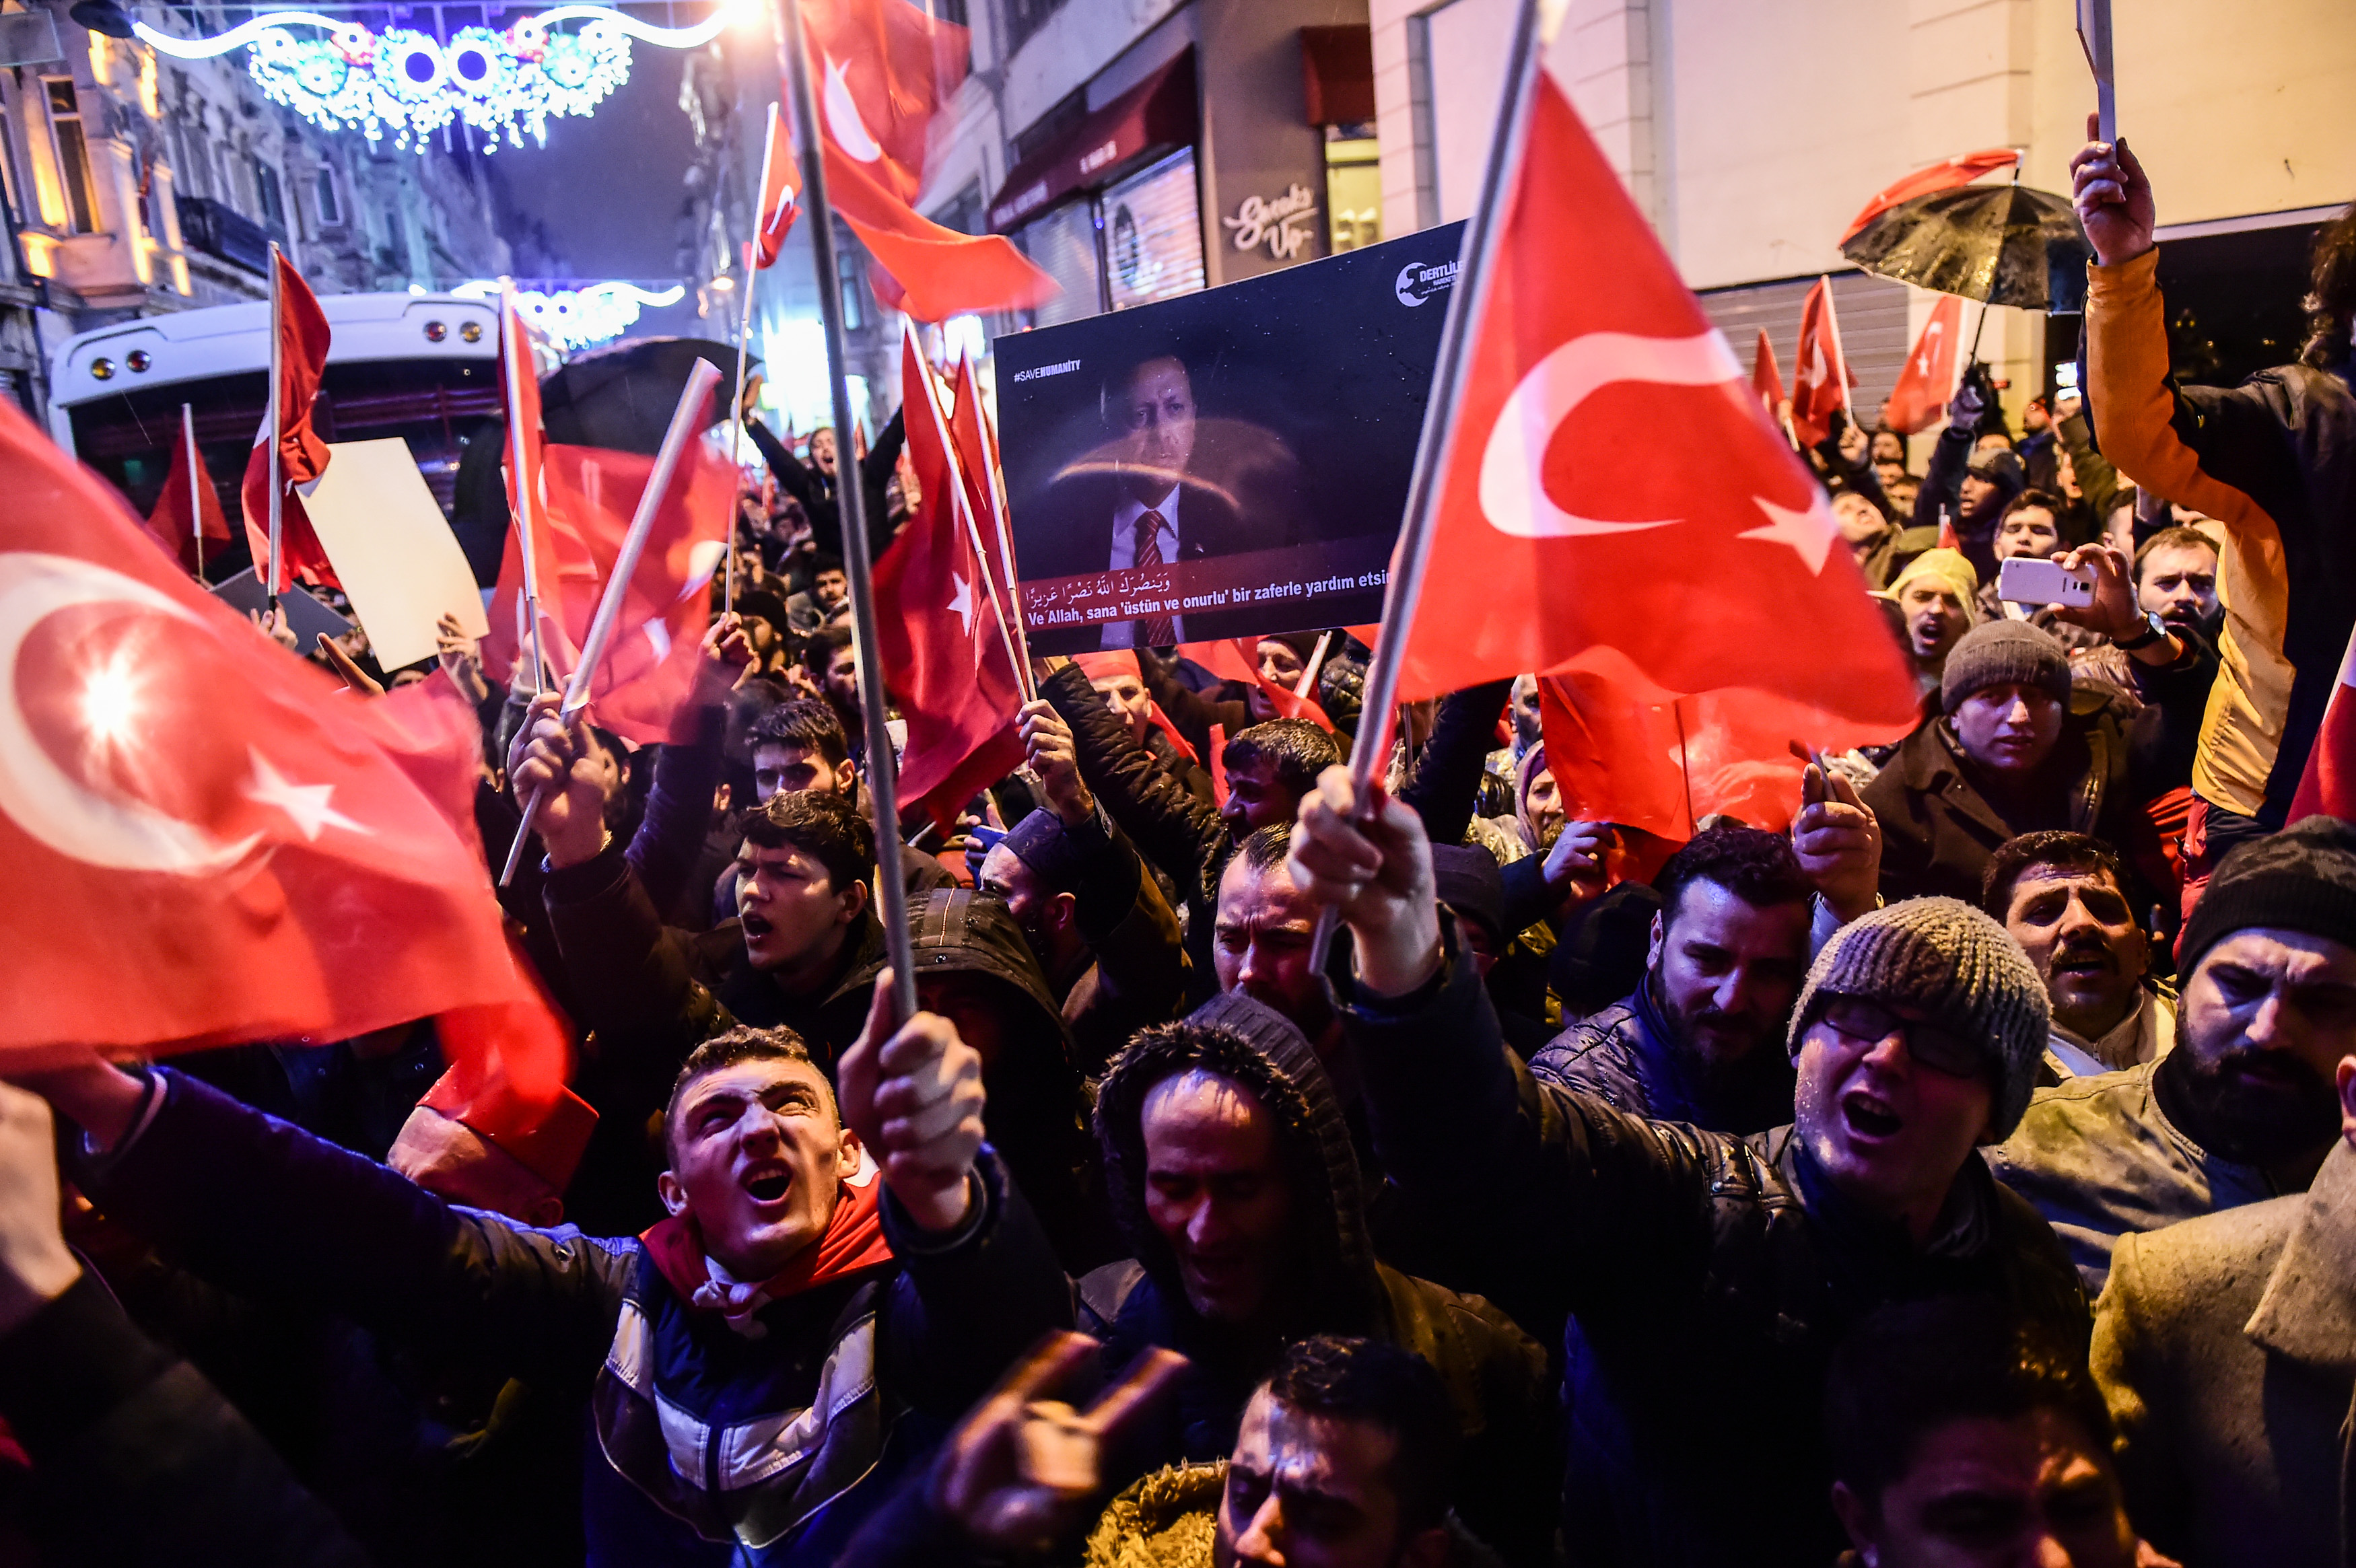 TURKEY-NETHERLANDS-POLITICS-DEMO